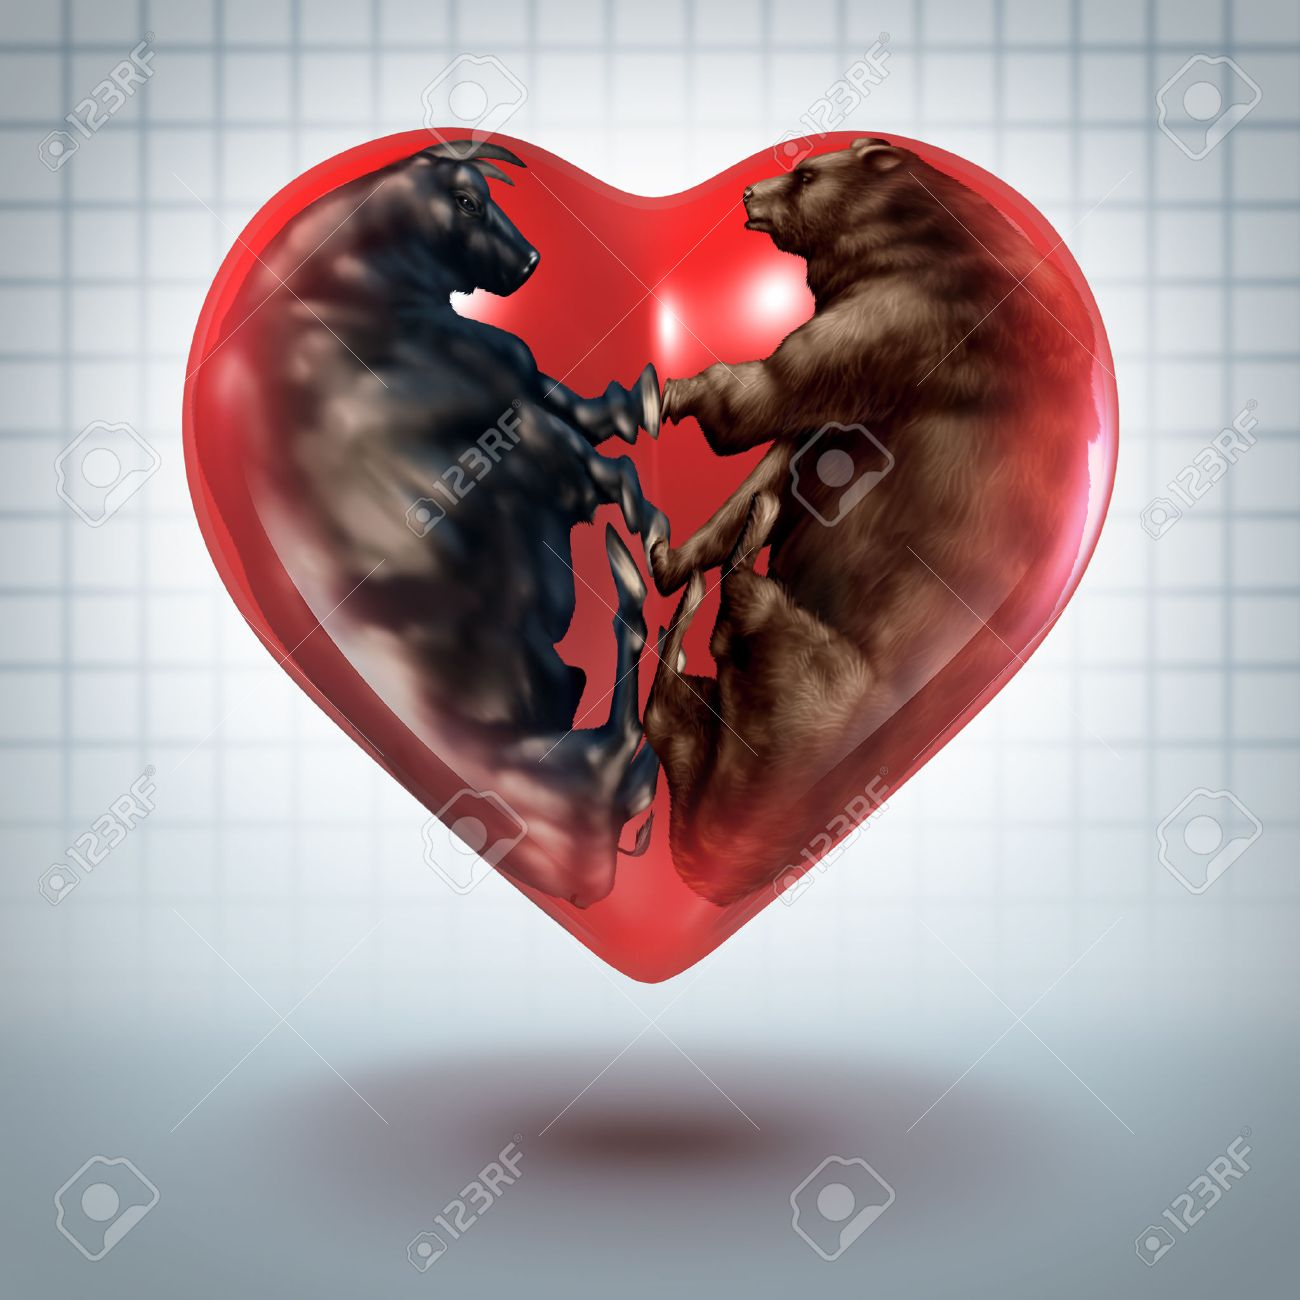 Investment love and loving investing concept as a bear and bull investment love and loving investing concept as a bear and bull curled in the shape of buycottarizona